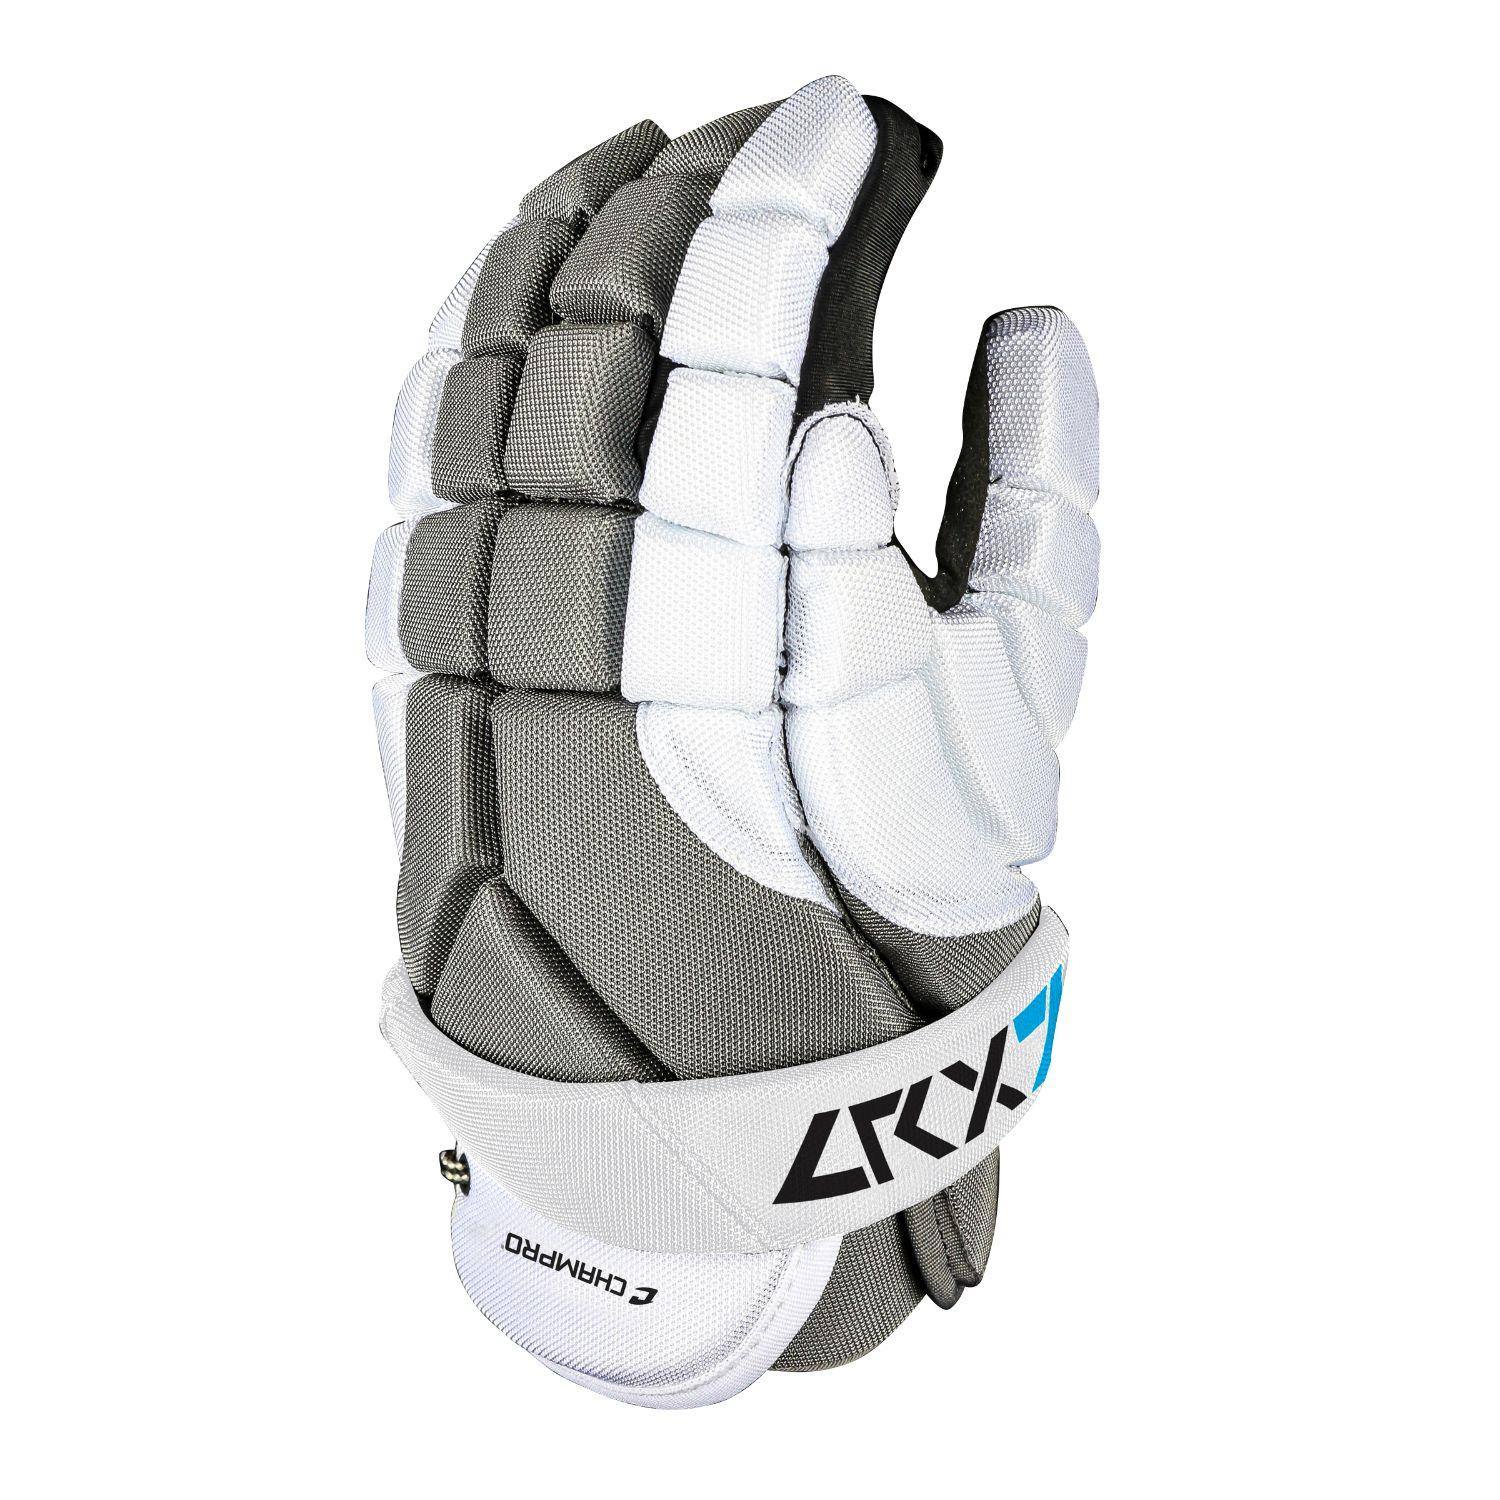 Champro LRX7 12 in Lacrosse Glove Grey White Large